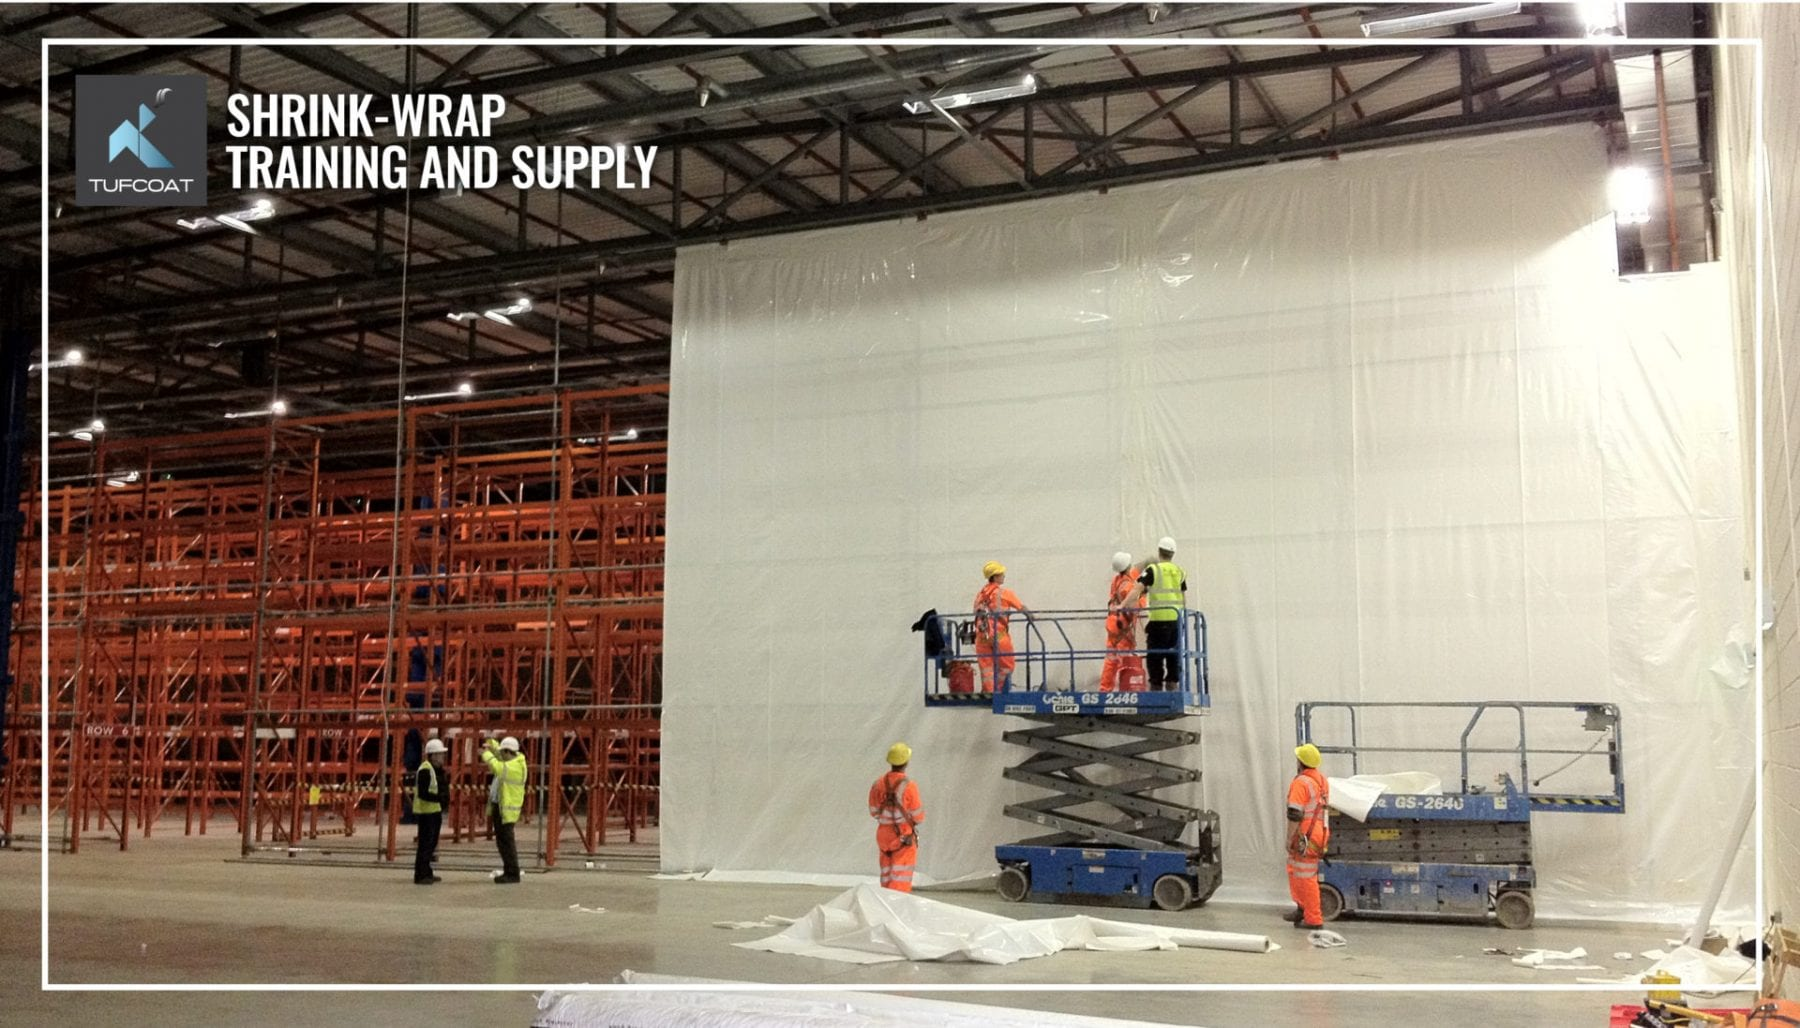 Tufcoat shrink-wrap training and supply